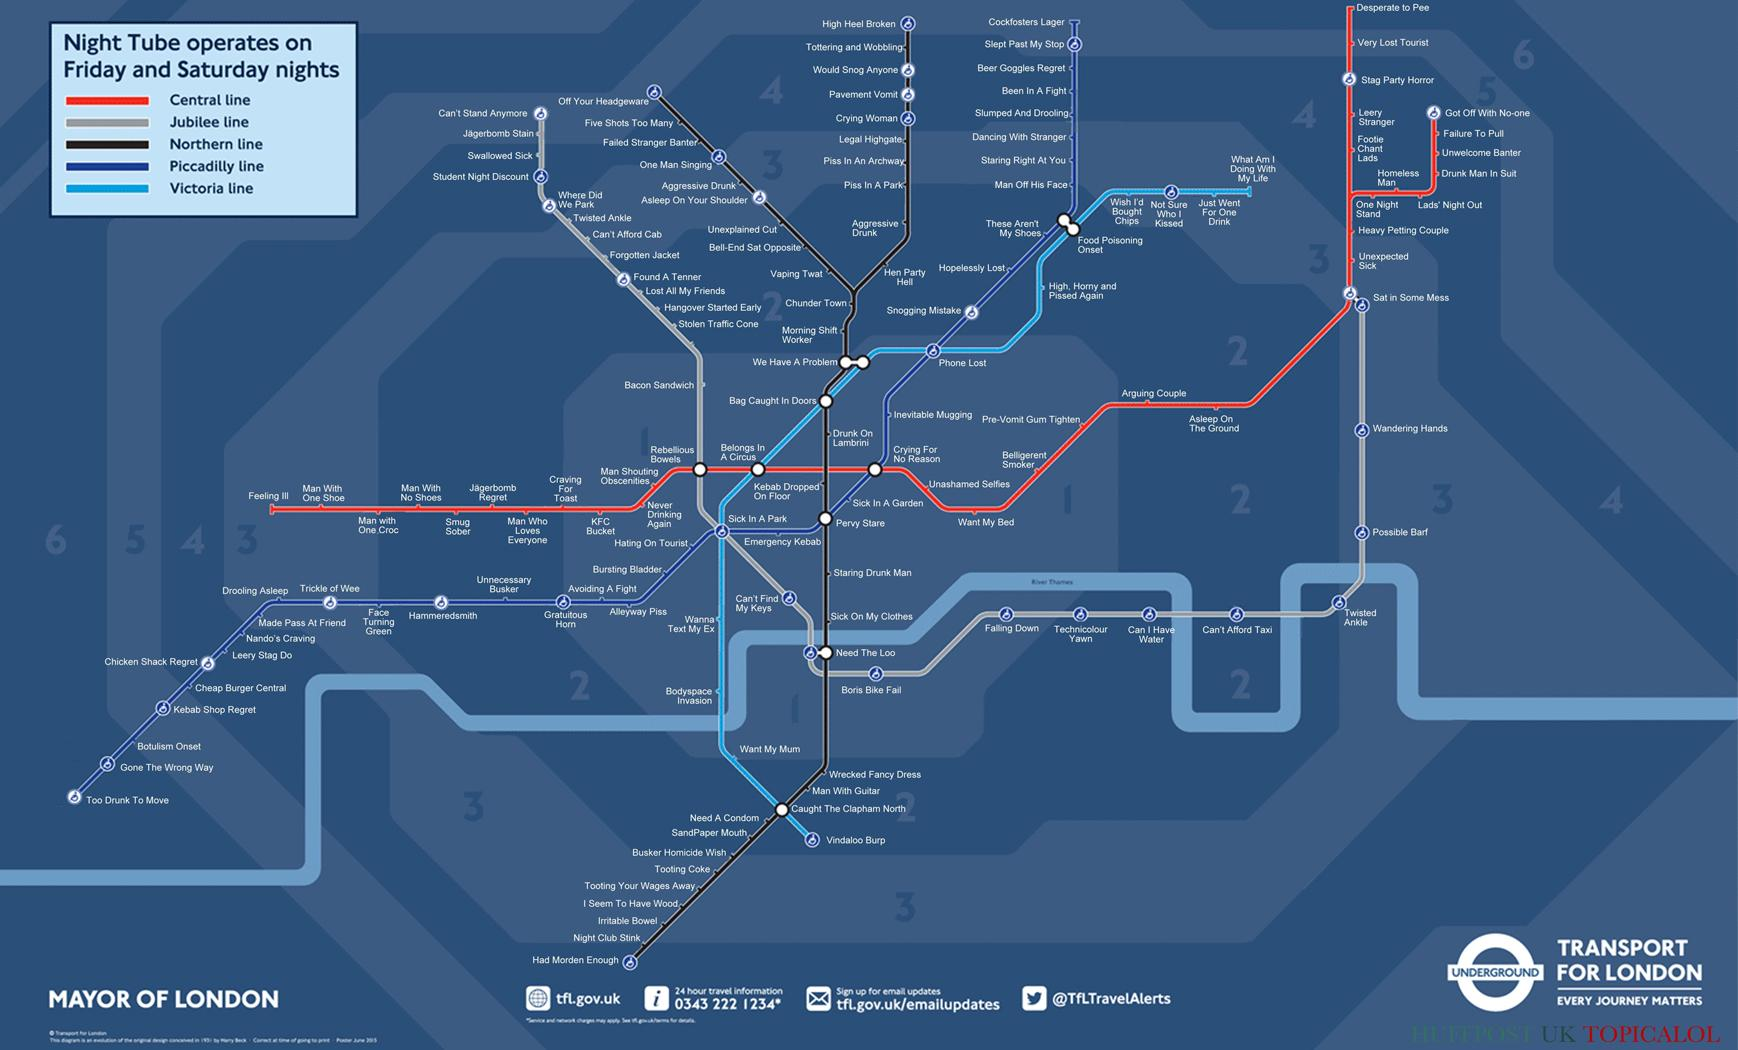 New Night Tube map with honest station names. (done for @HuffPostUKCom with @Pandamoanimum ) http://t.co/bl4pX8p1at http://t.co/MvU8dLAaDs